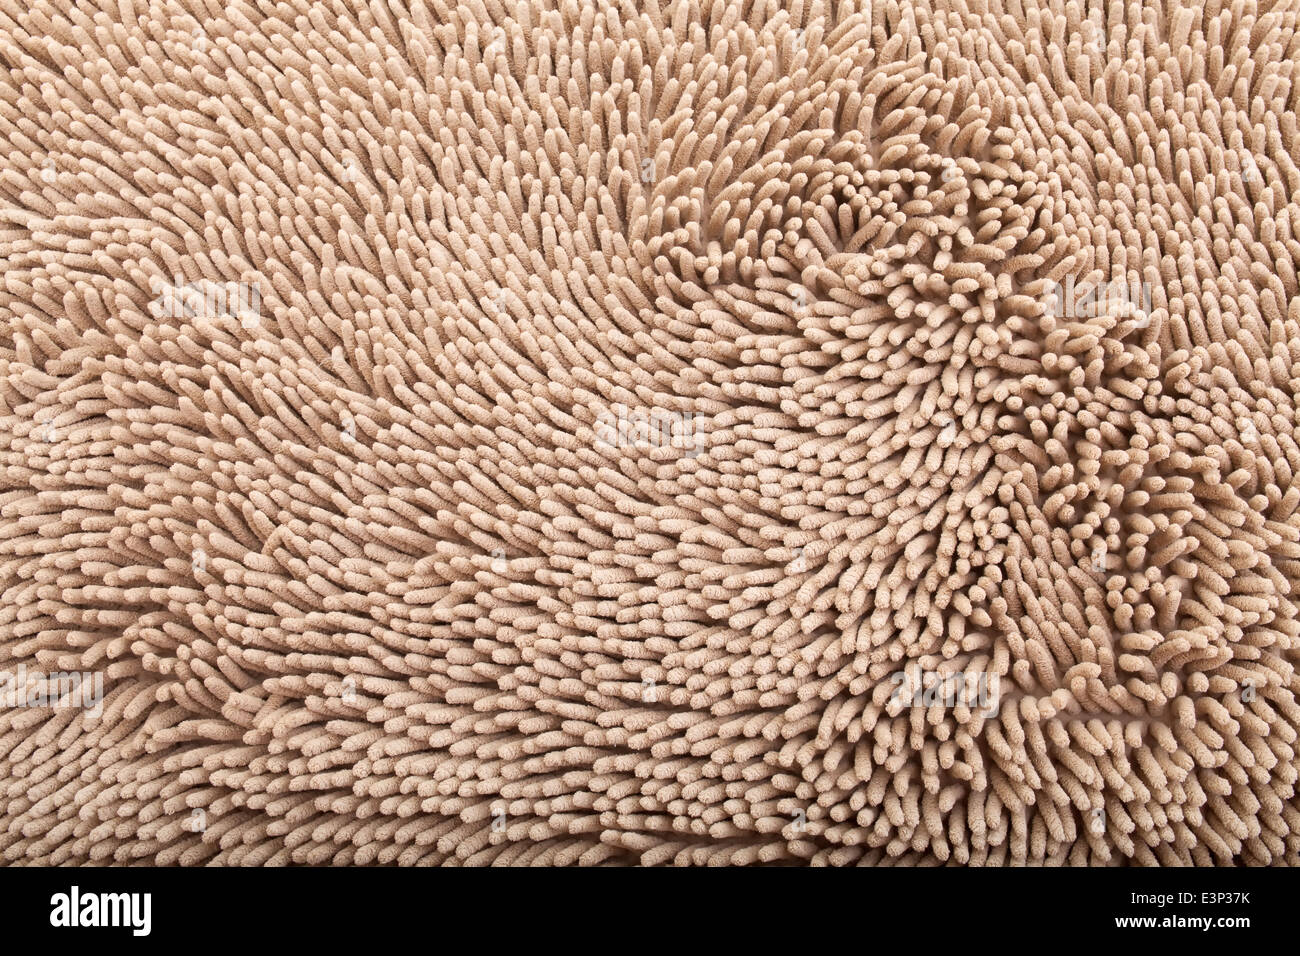 Coir natural fiber doormat, suitable for use as background or ...